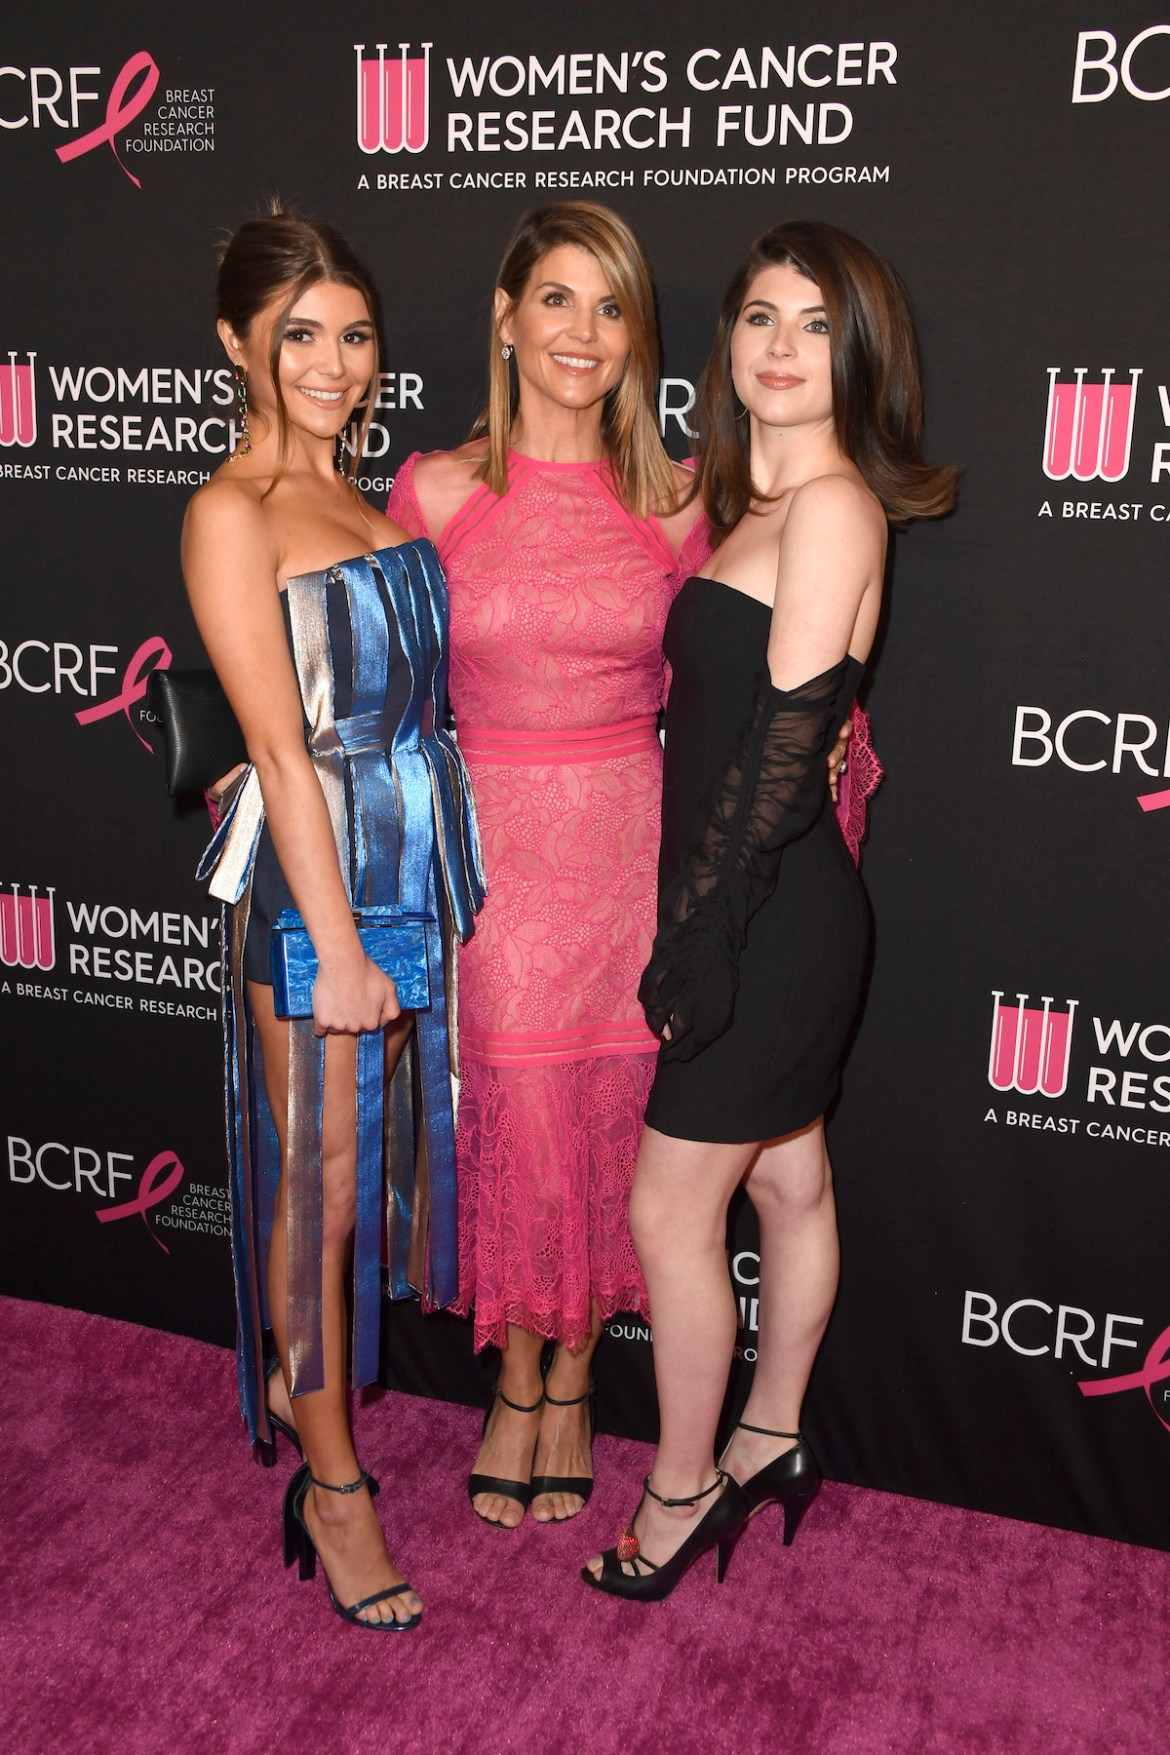 Olivia Jade Giannulli, Lori Loughlin and Isabella Rose Giannulli attend The Women's Cancer Research Fund's An Unforgettable Evening Benefit Gala at the Beverly Wilshire Four Seasons Hotel on February 28, 2019 in Beverly Hills, California. (Photo by Frazer Harrison/Getty Images)